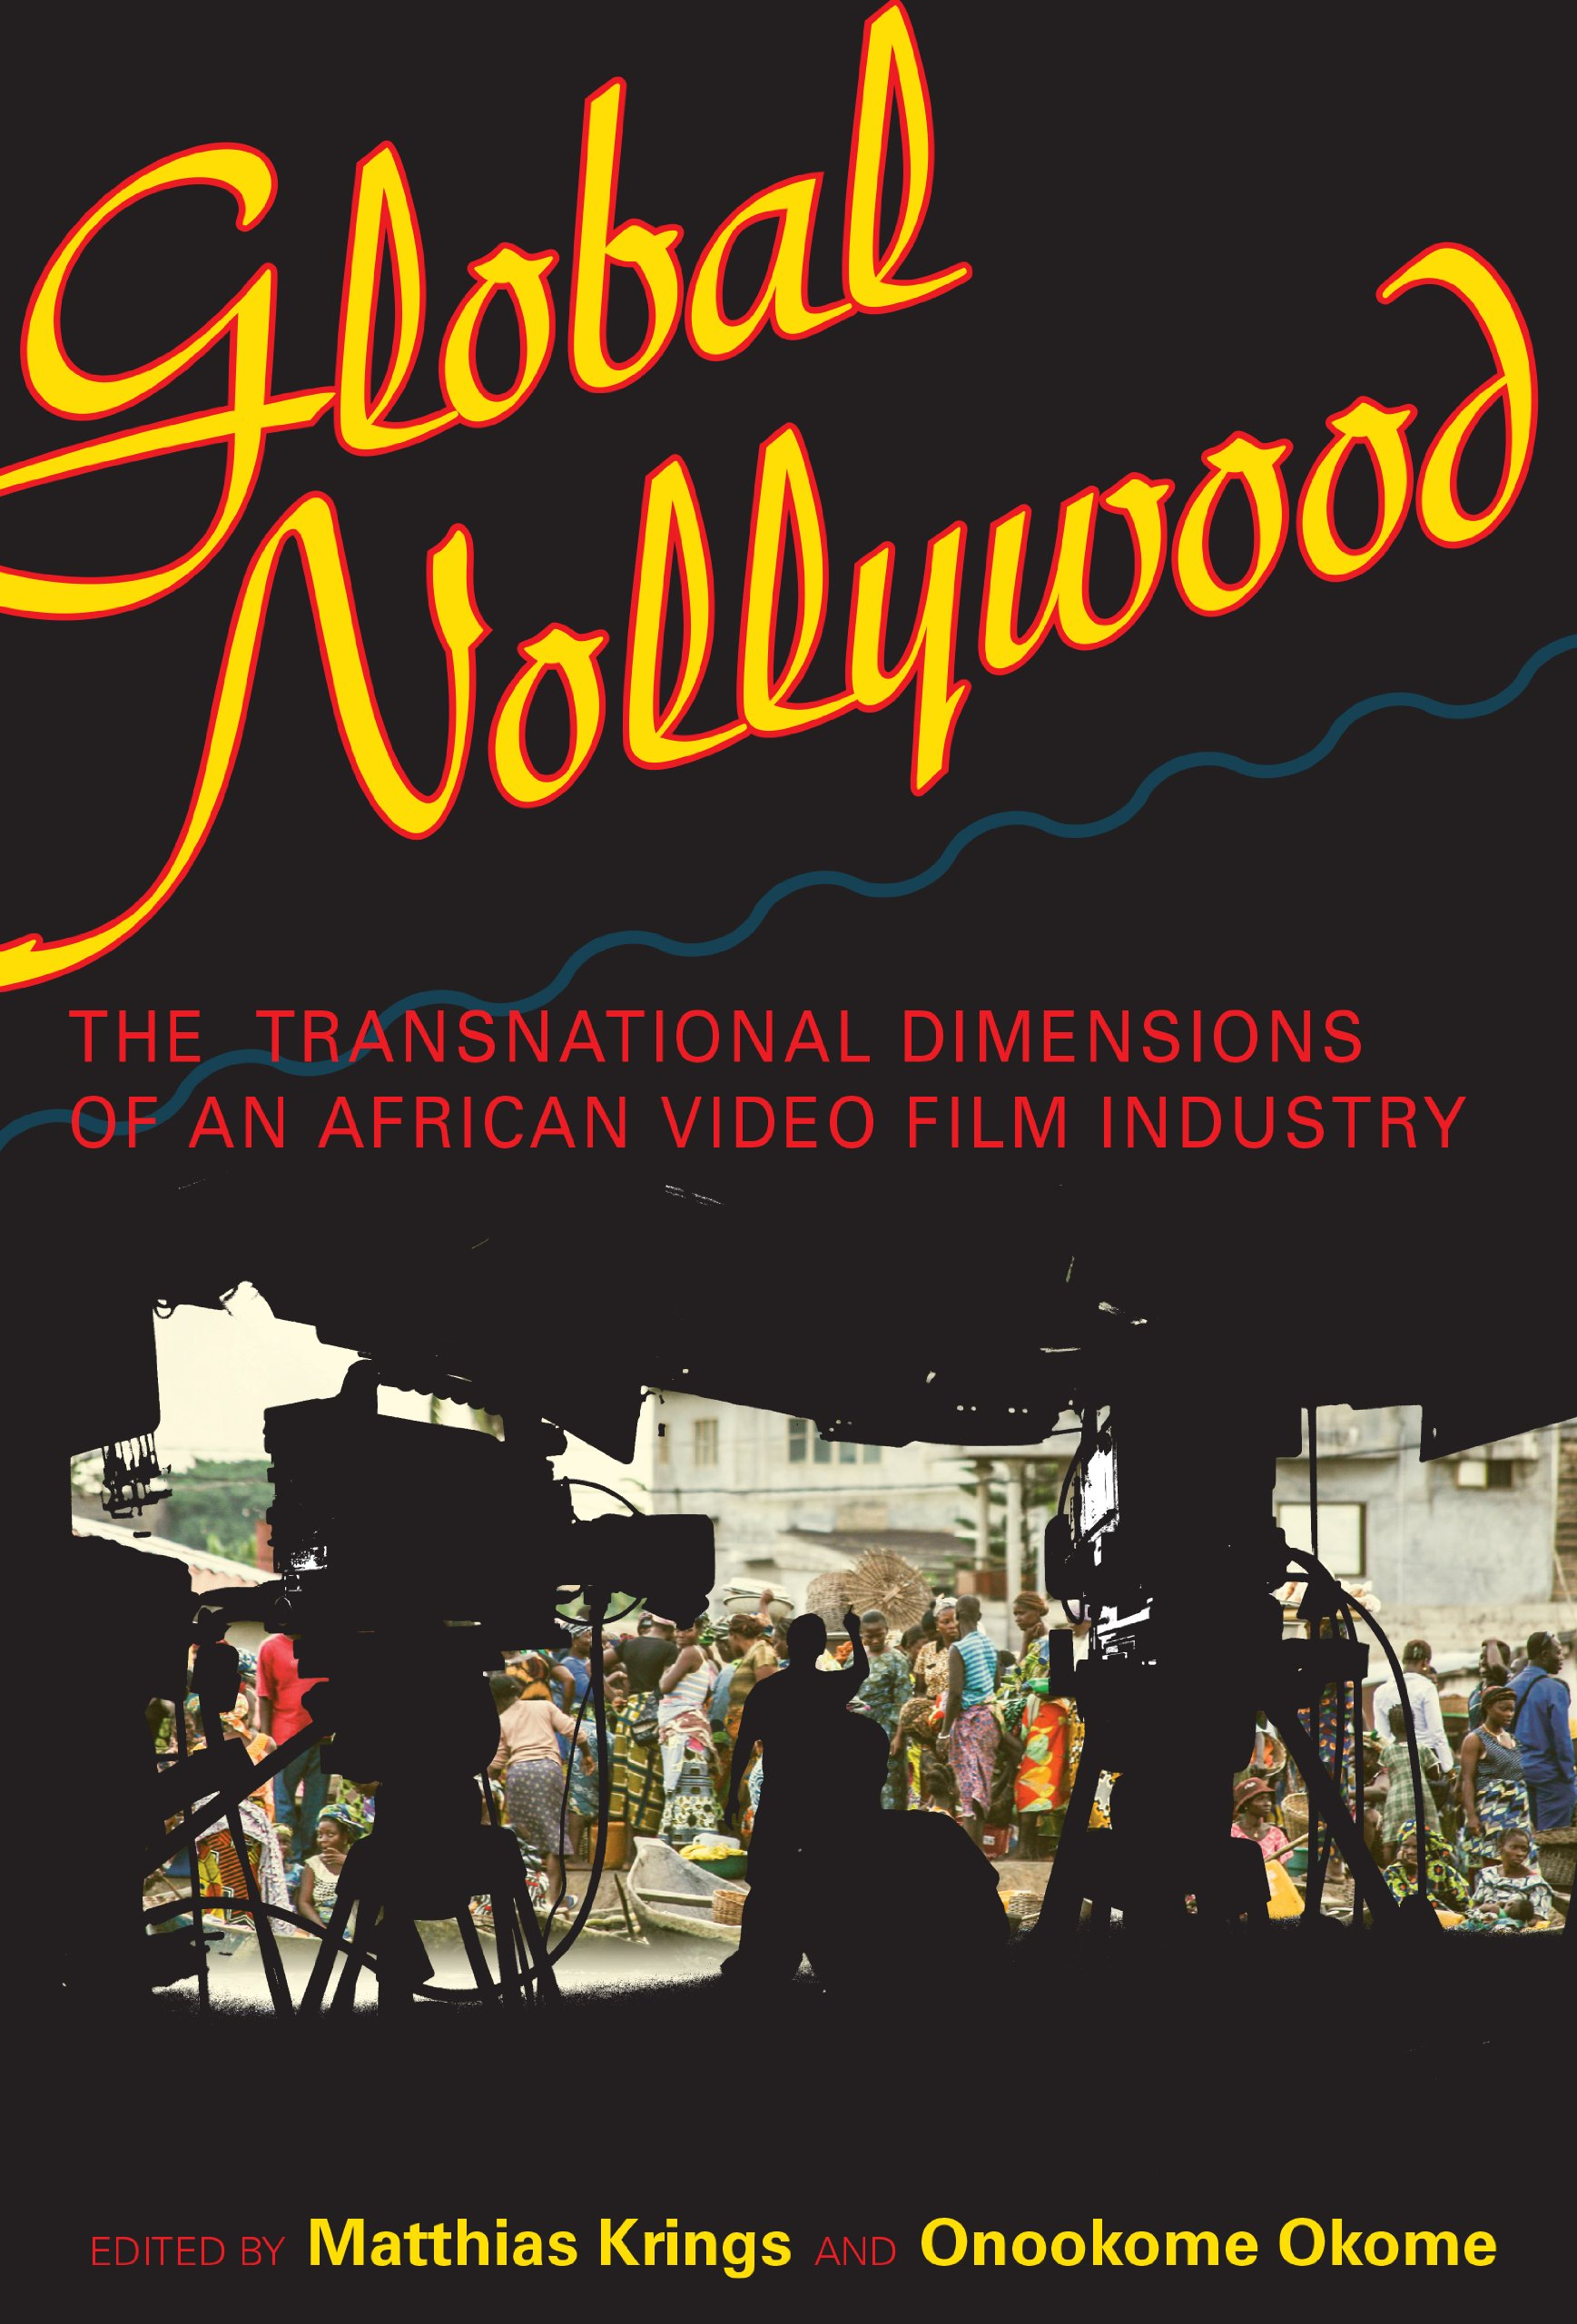 Global Nollywood: The Transnational Dimensions of an African Video Film Industry (African Expressive Cultures) ebook